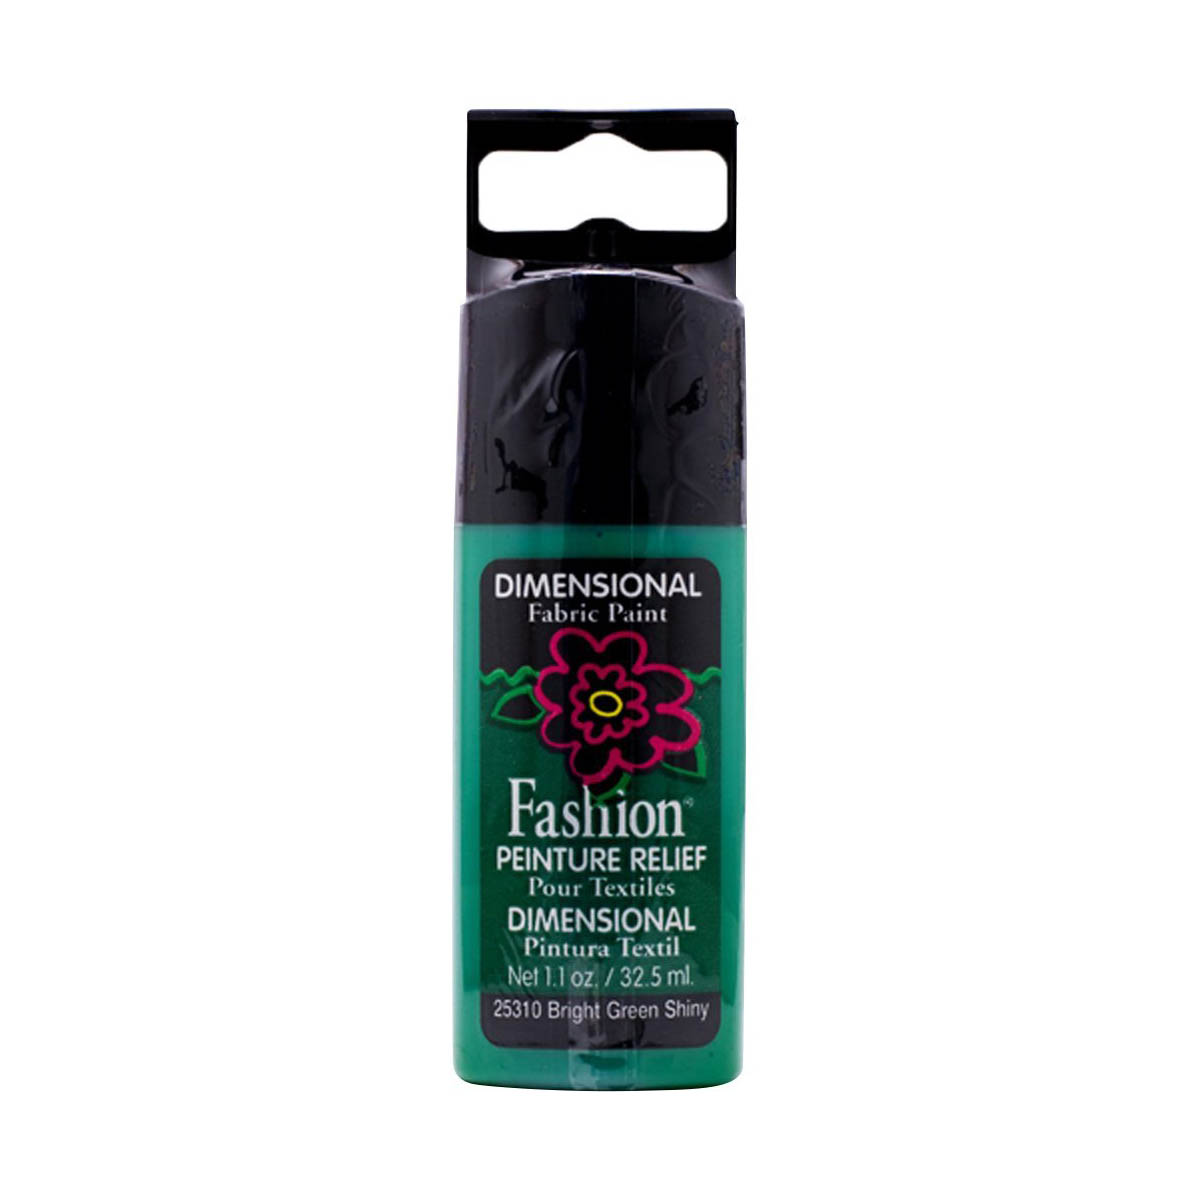 Fashion ® Dimensional Fabric Paint  - Shiny - Bright Green